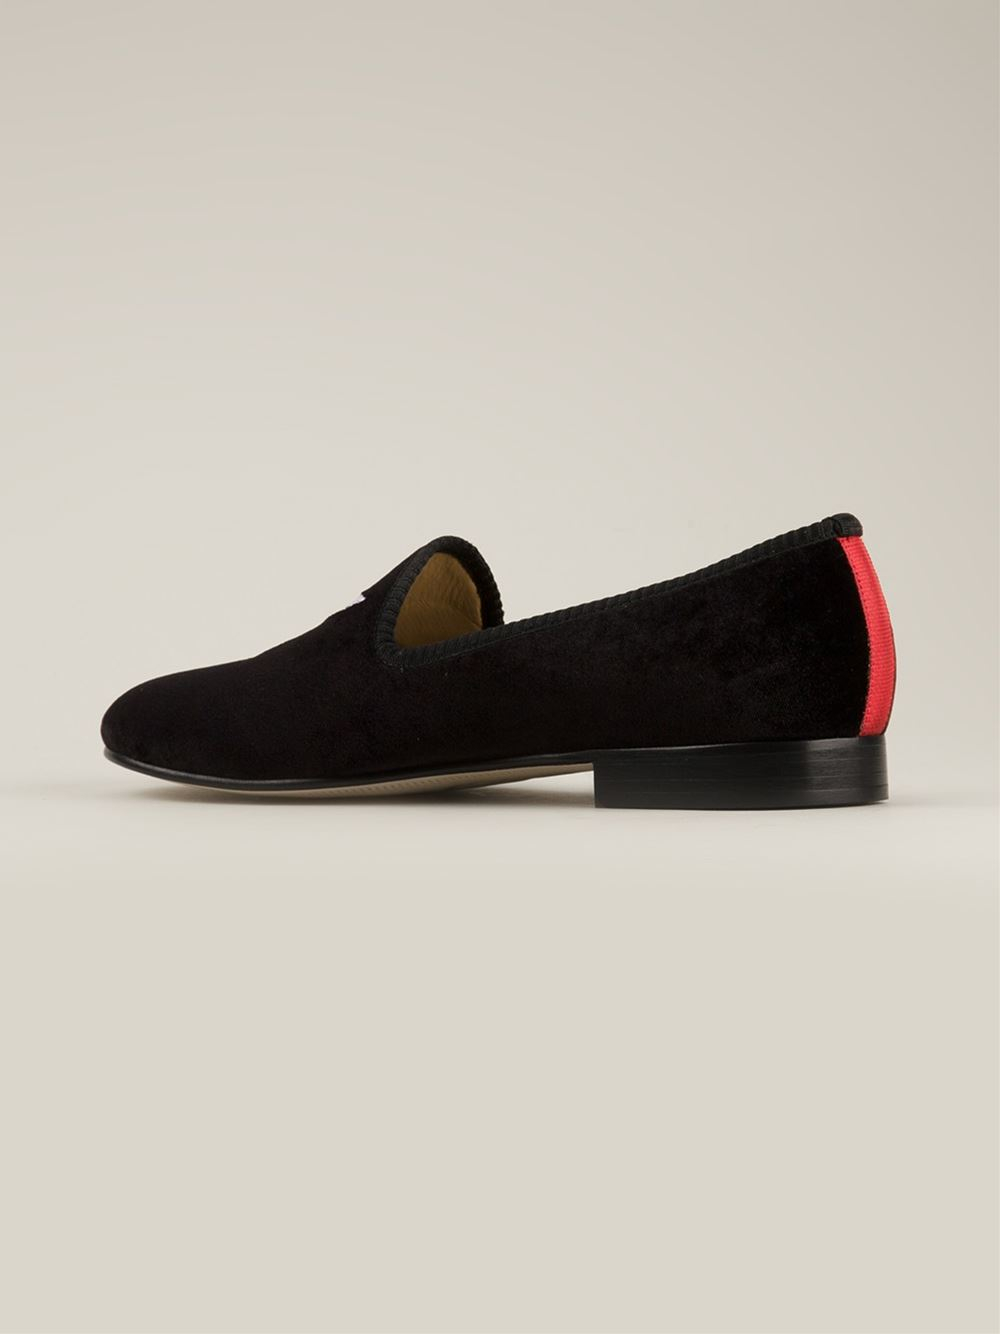 4237b6917d2 Lyst - Del Toro Silk and Leather Slippers in Black for Men